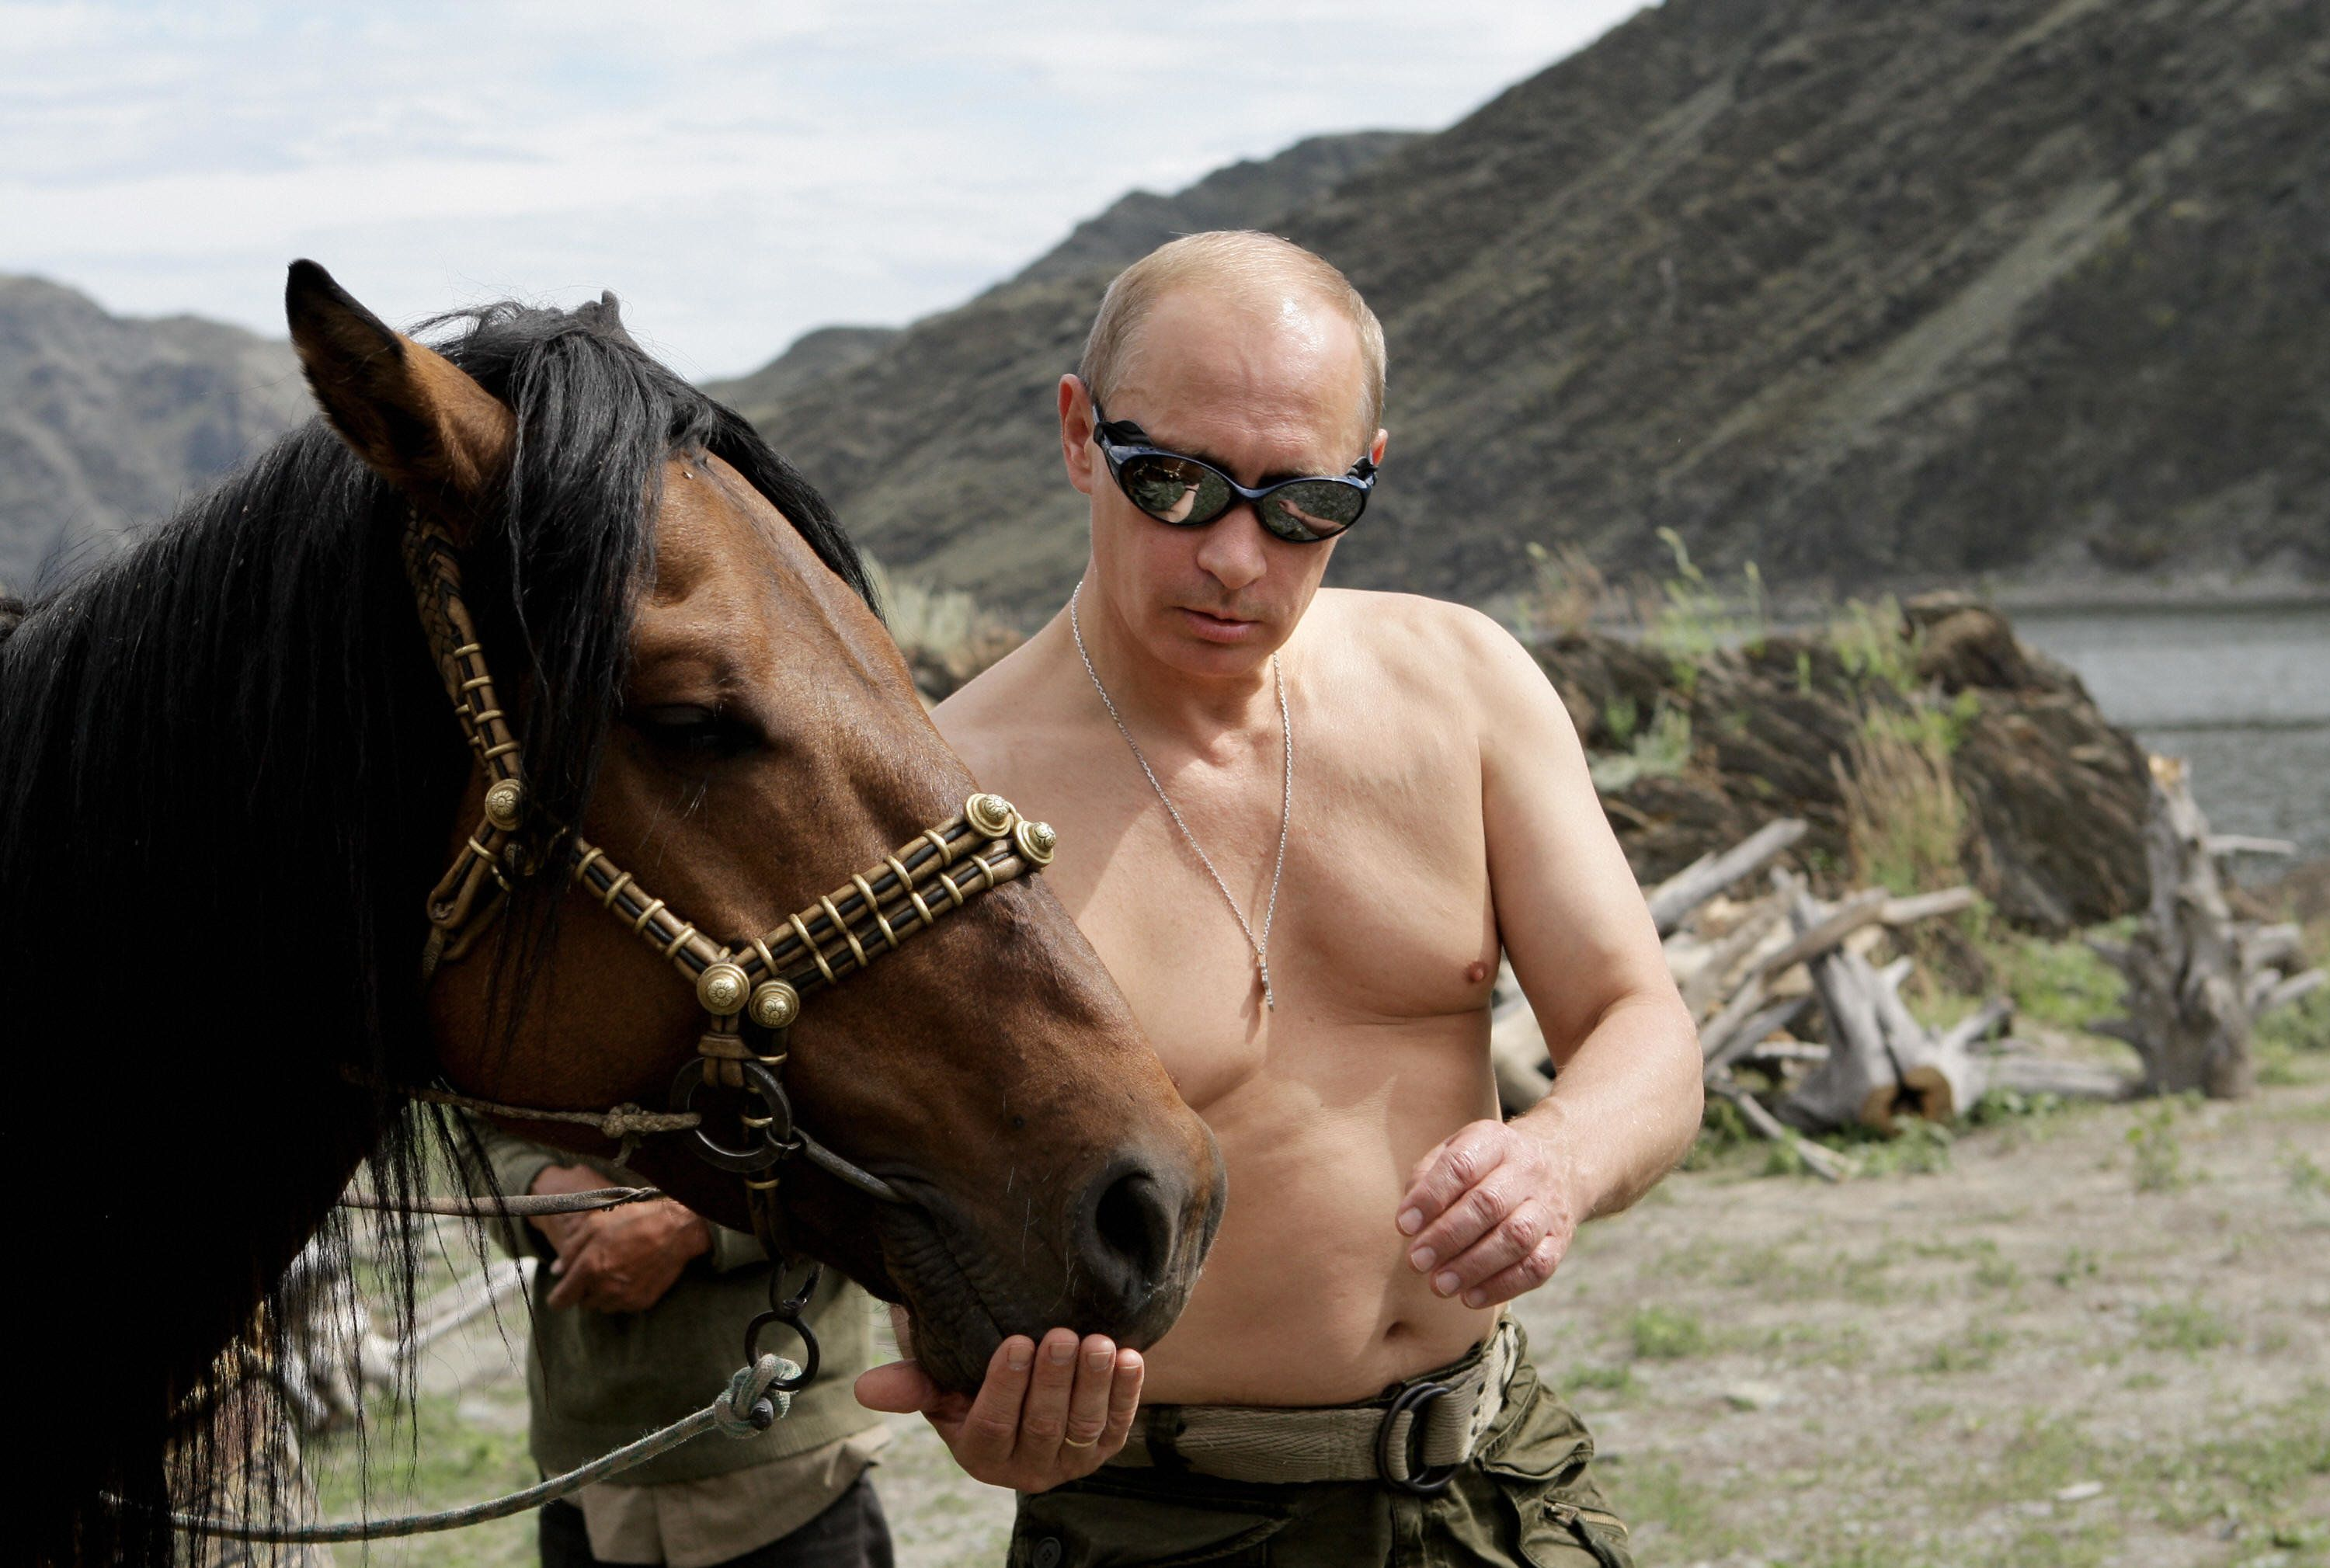 Russian Prime Minister Vladimir Putin is pictured with a horse during his vacation outside the town of Kyzyl in Southern Siberia on August 3, 2009.  AFP PHOTO / RIA-NOVOSTI / ALEXEY DRUZHININ (Photo credit should read ALEXEY DRUZHININ/AFP/Getty Images)